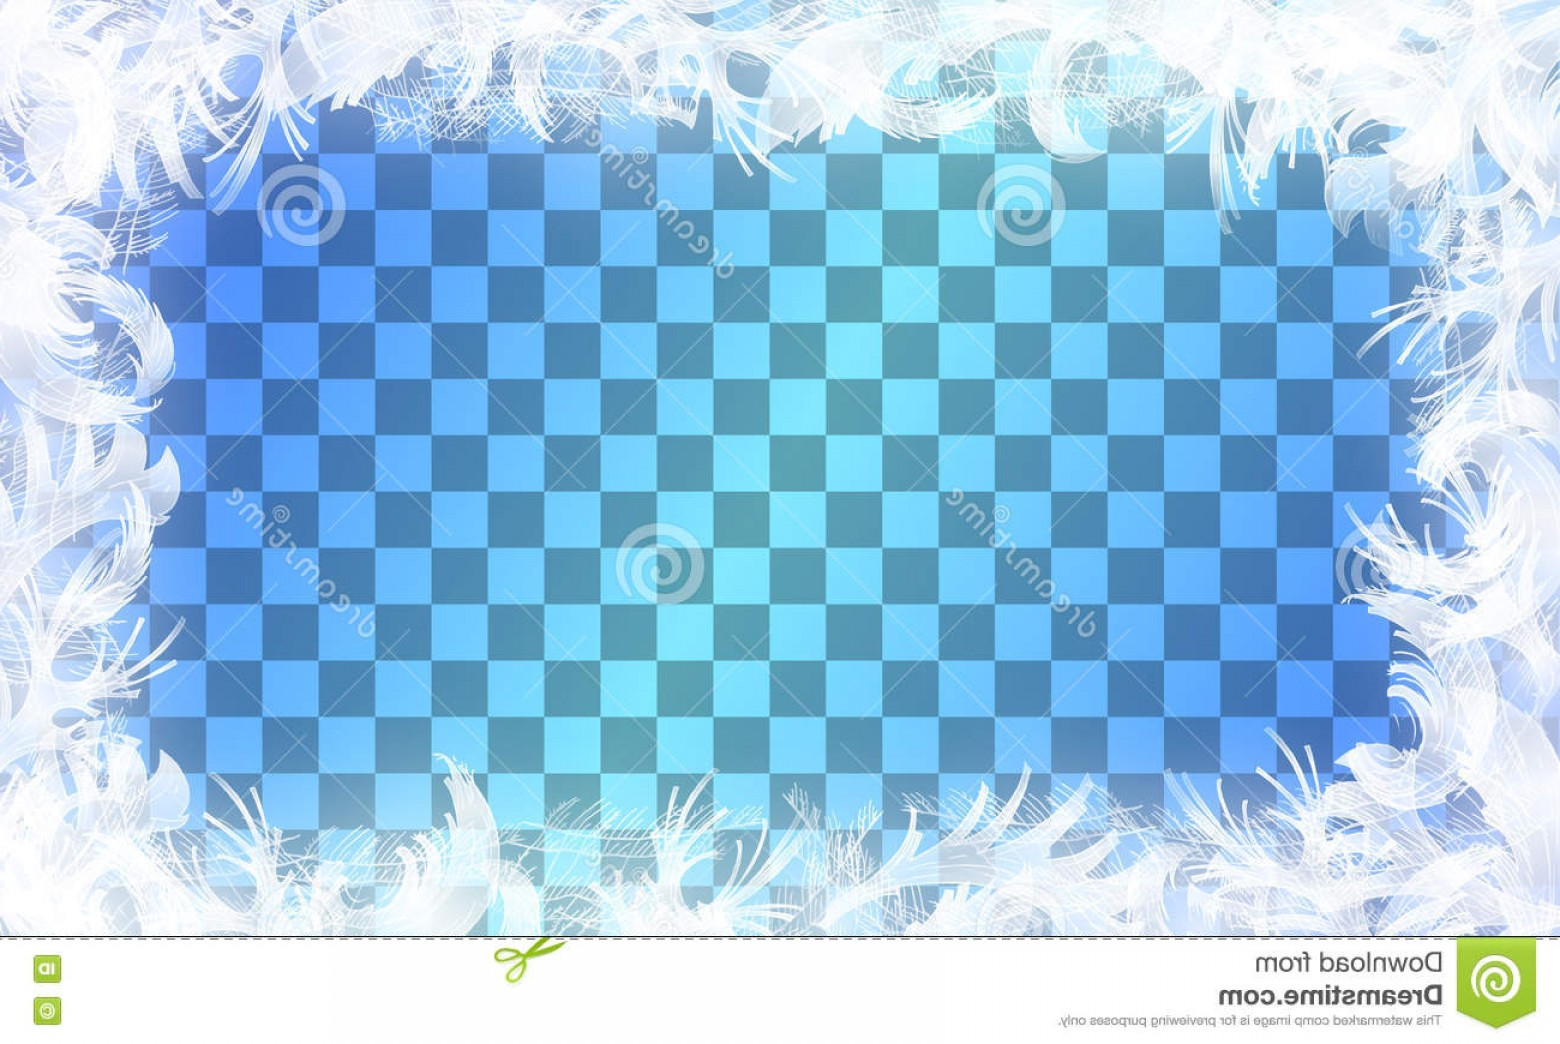 Frost Border Vector: Stock Illustration Vector Frost Glass Pattern Winter Frame Transparent Background Christmas Illustration Image